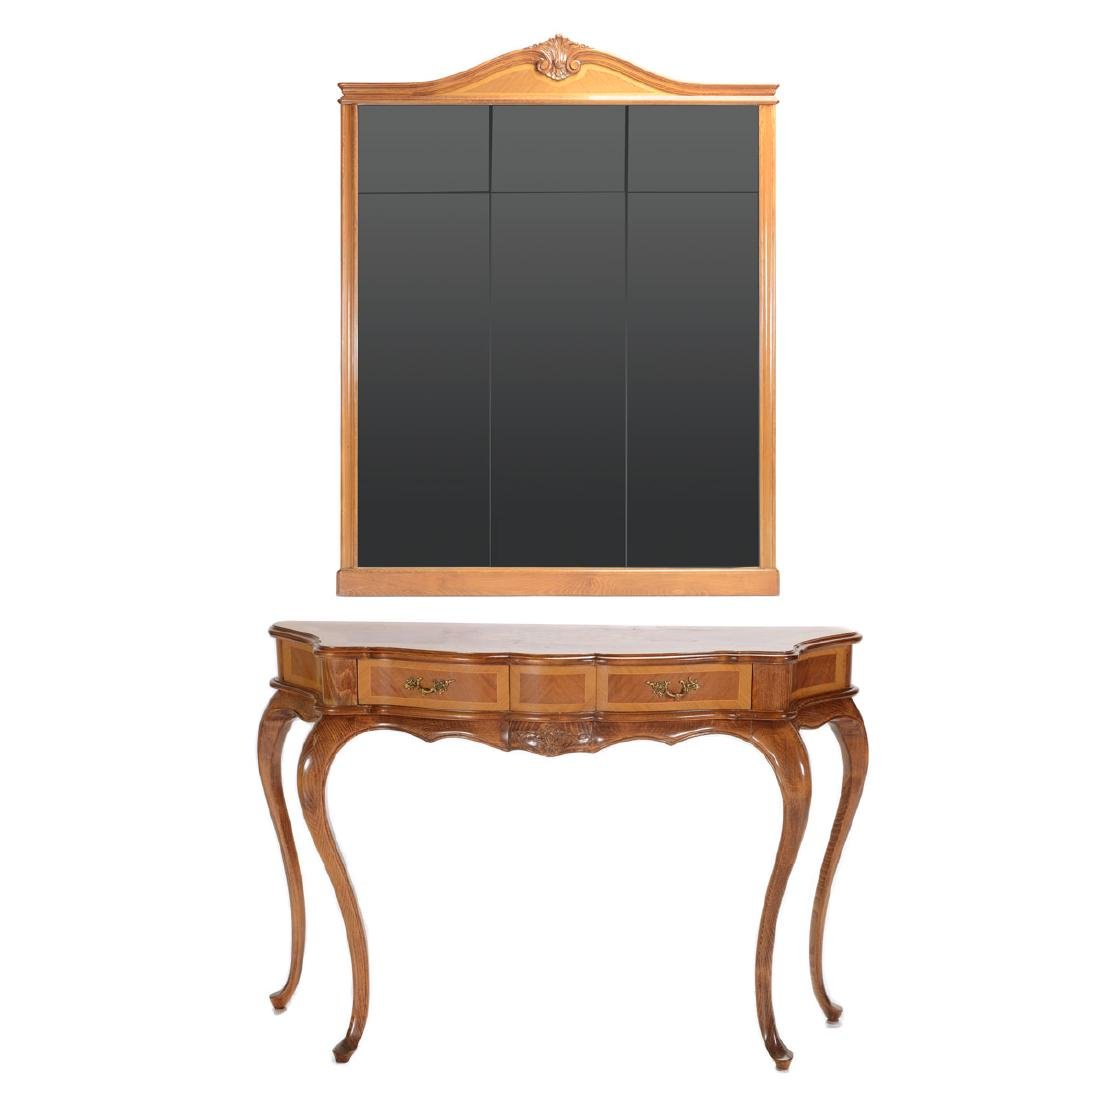 Italian Inlaid Console Table and Associated Mirror